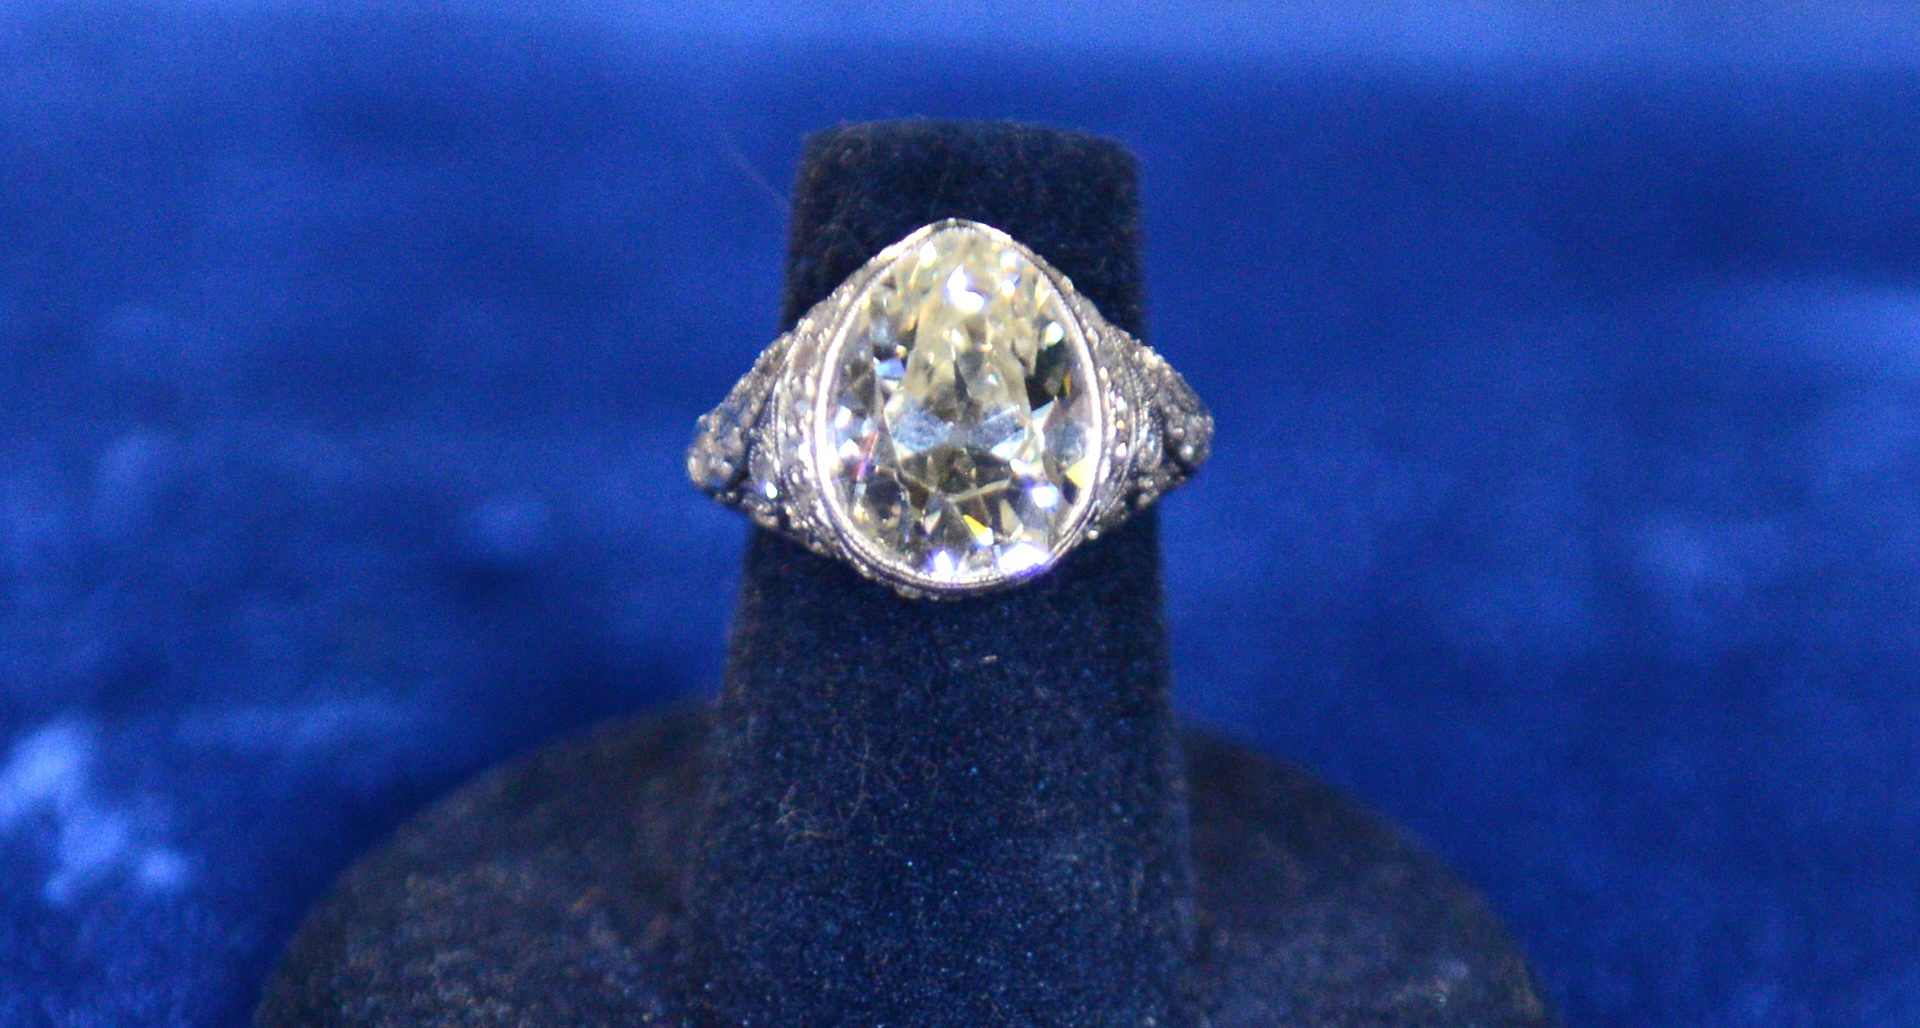 http://www-tc.pbs.org/prod-media/antiques-roadshow/article/images/diamond-engagment-ring.jpg